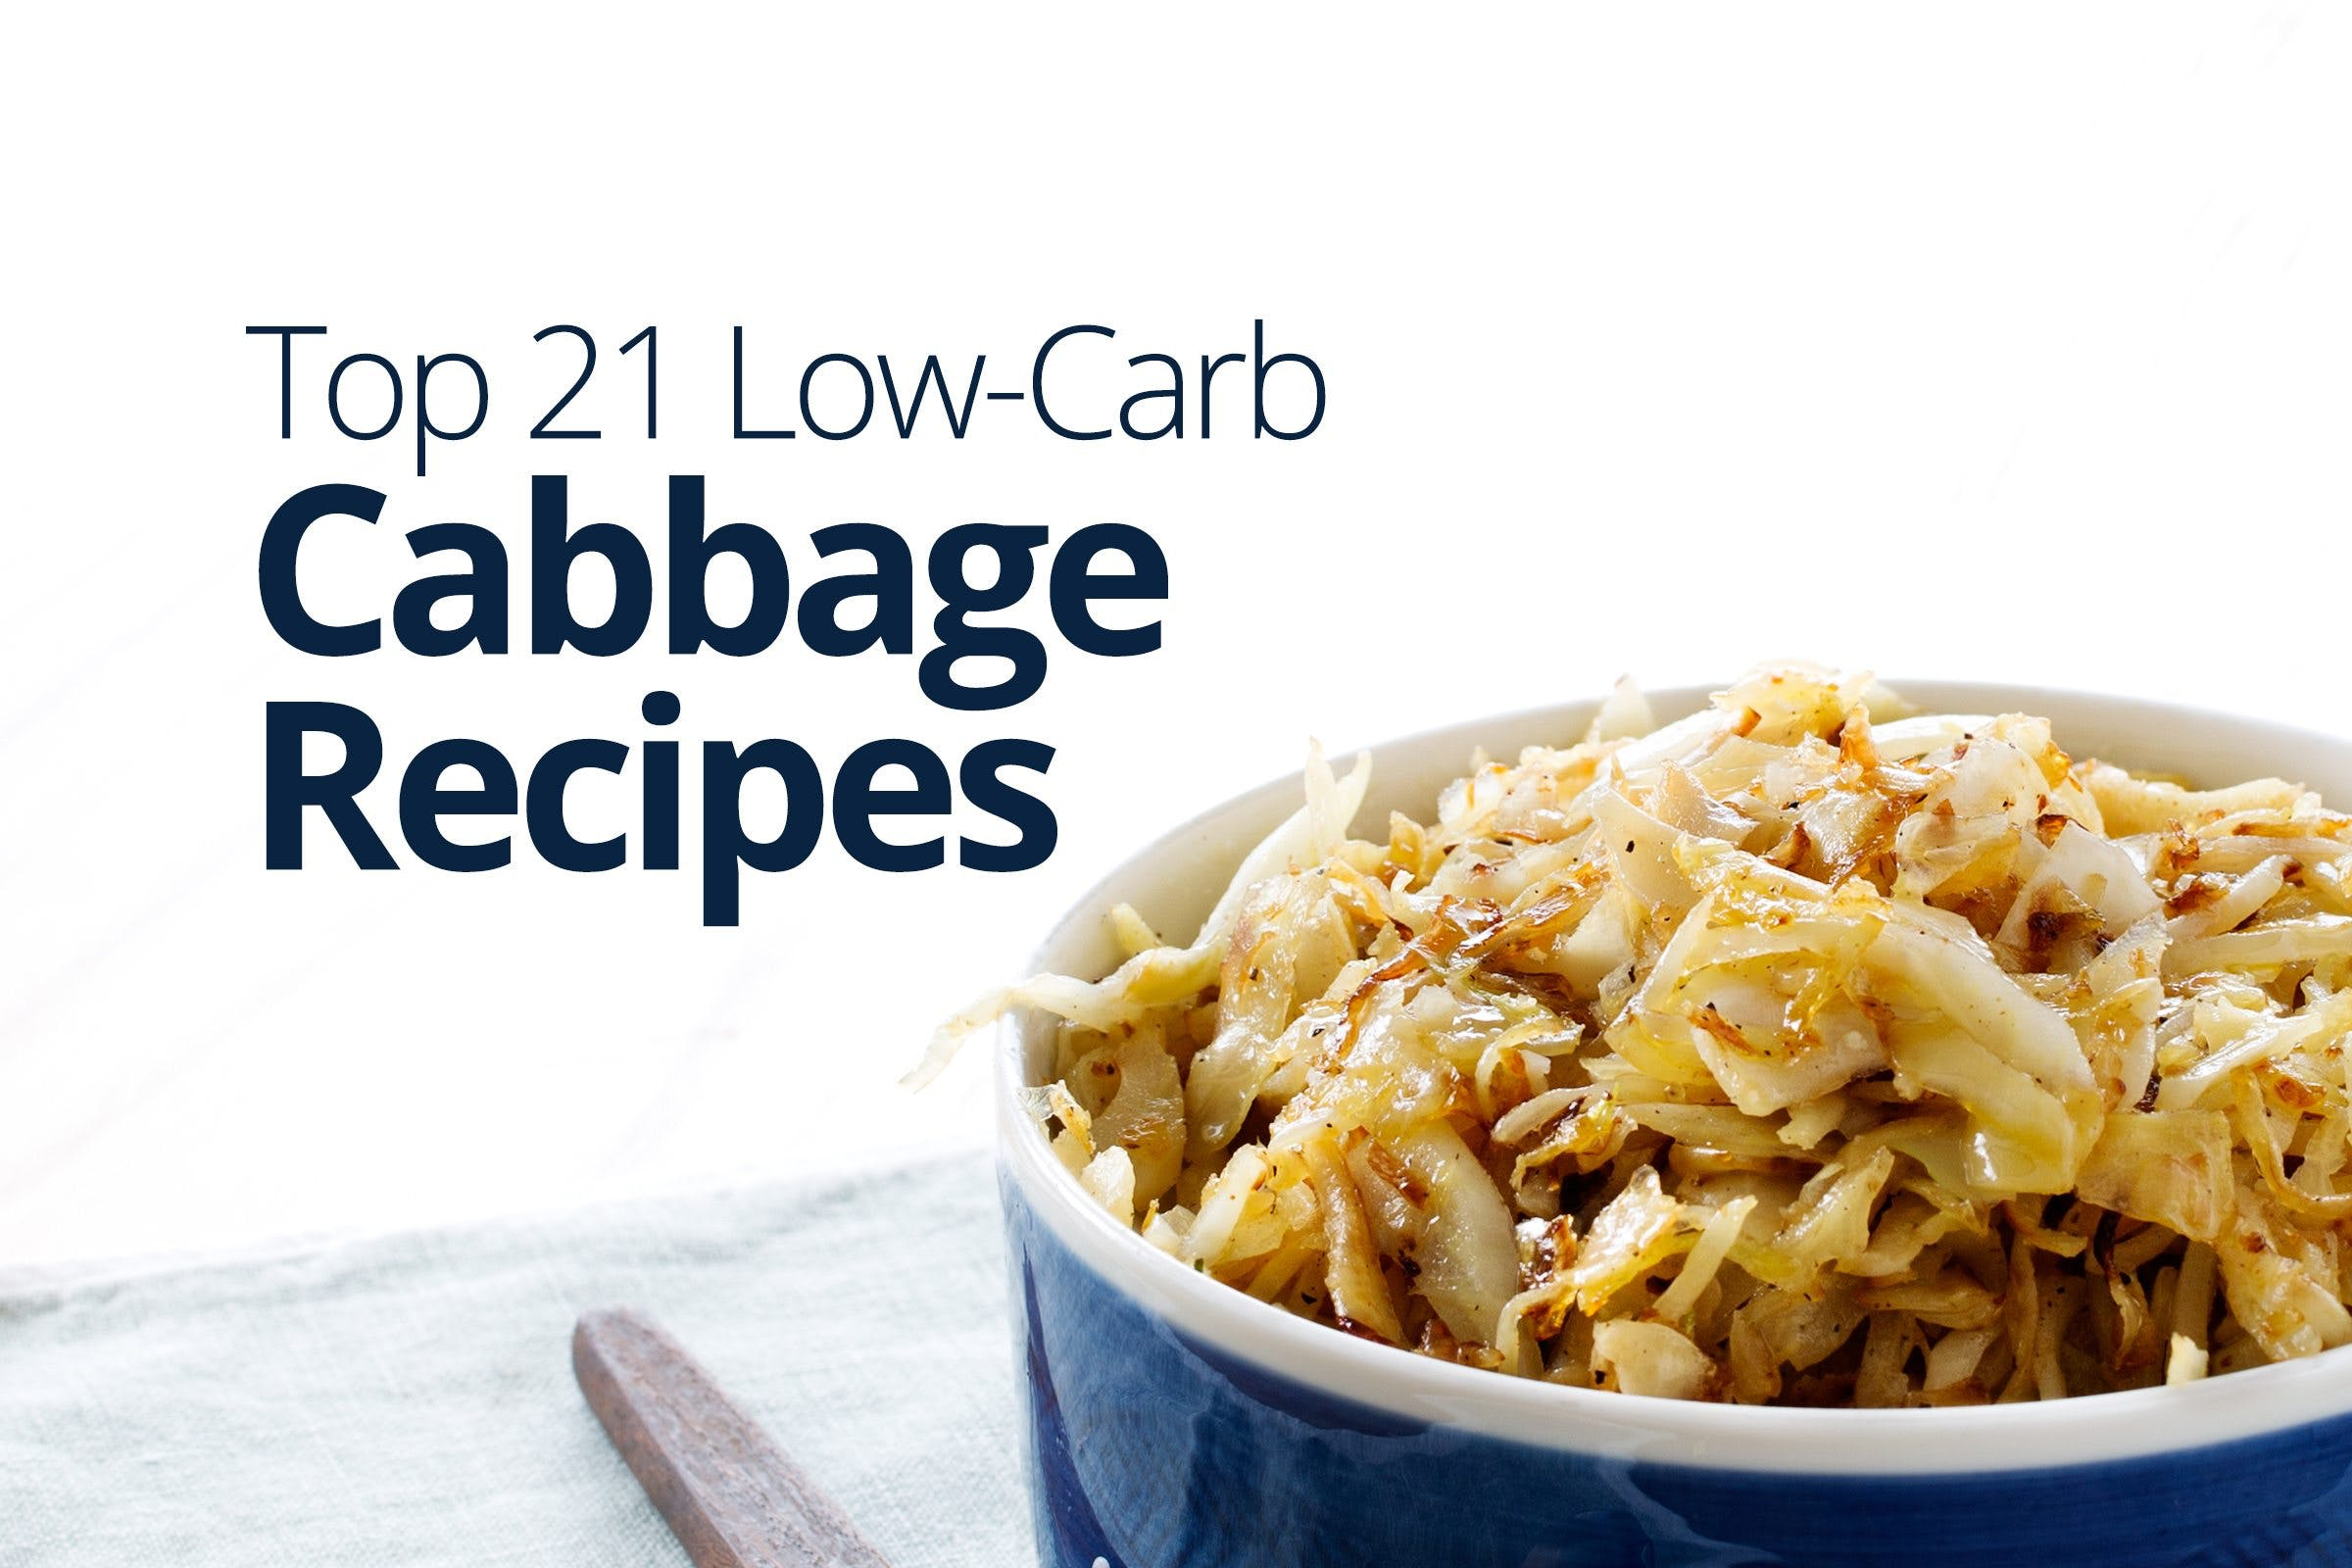 Low-carb and keto cabbage recipes